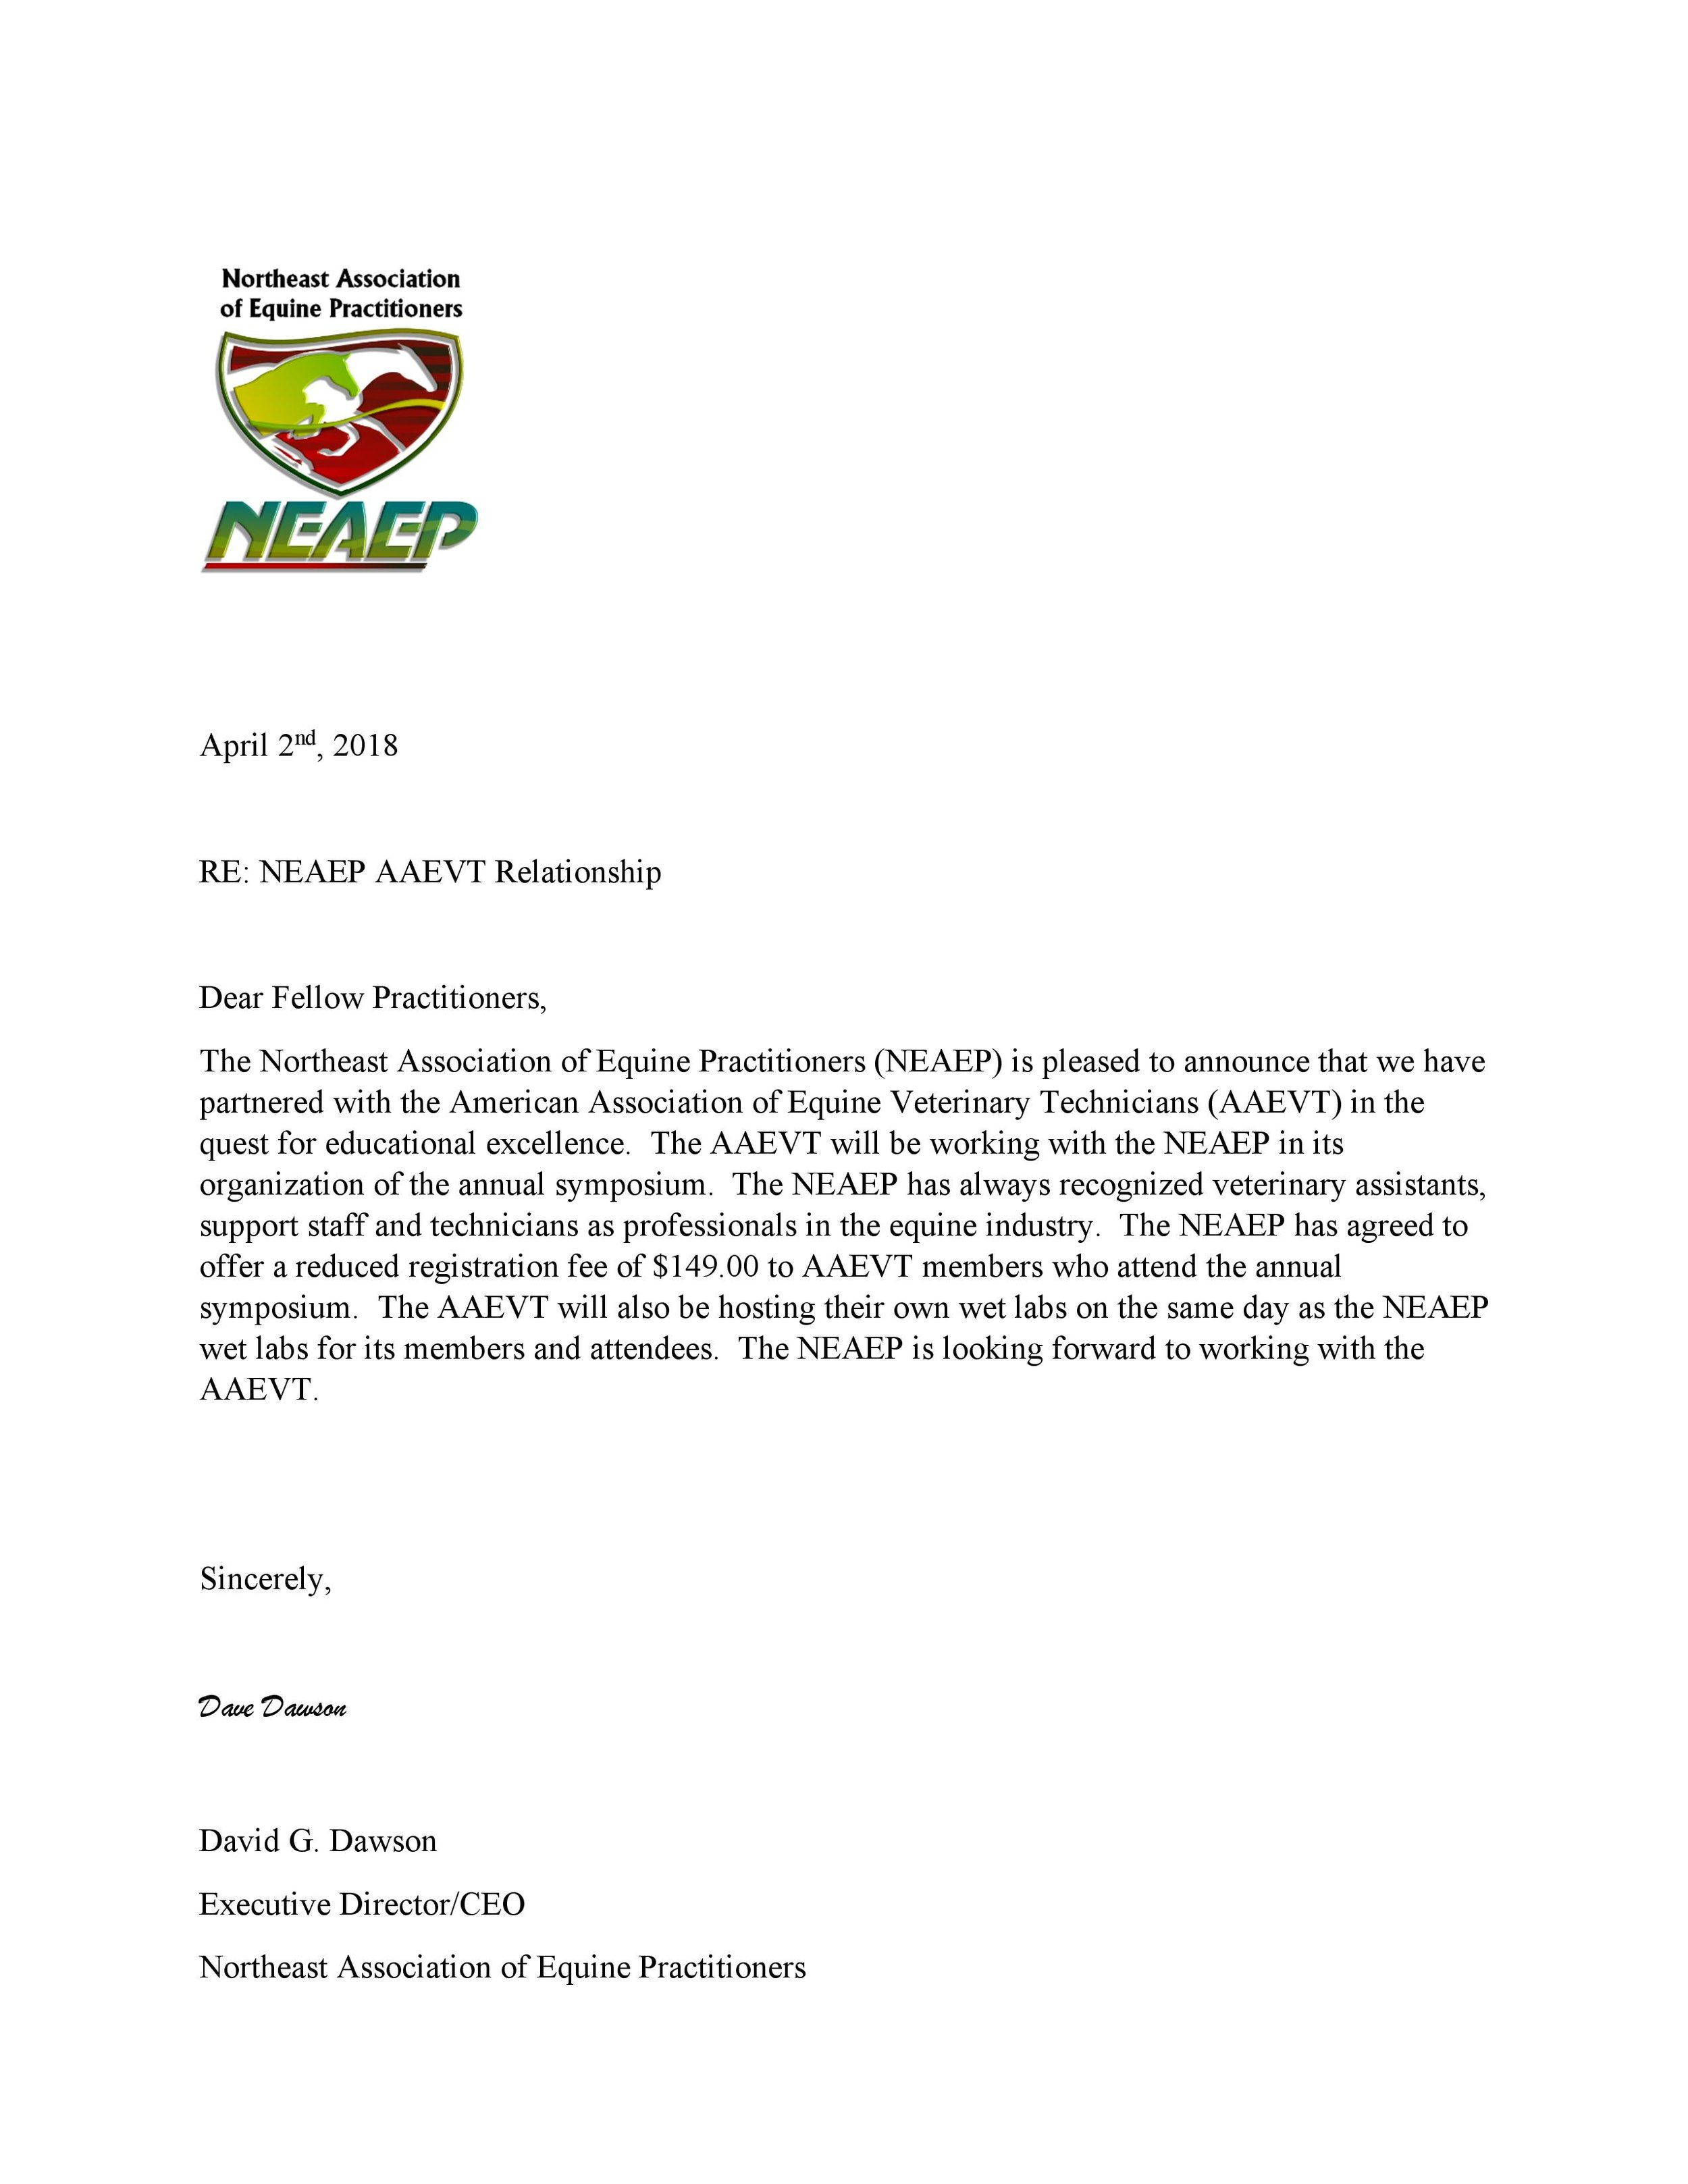 NEAEP AAEVT press release 2018-page-001.jpg